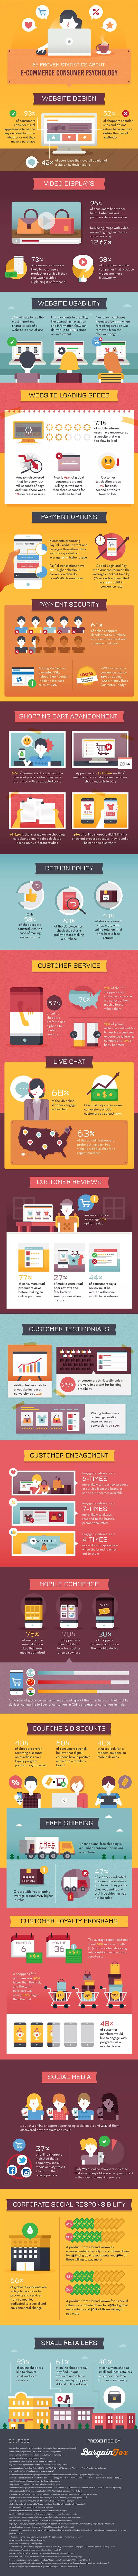 infographic-how-to-increase-conversions-ecommerce-website